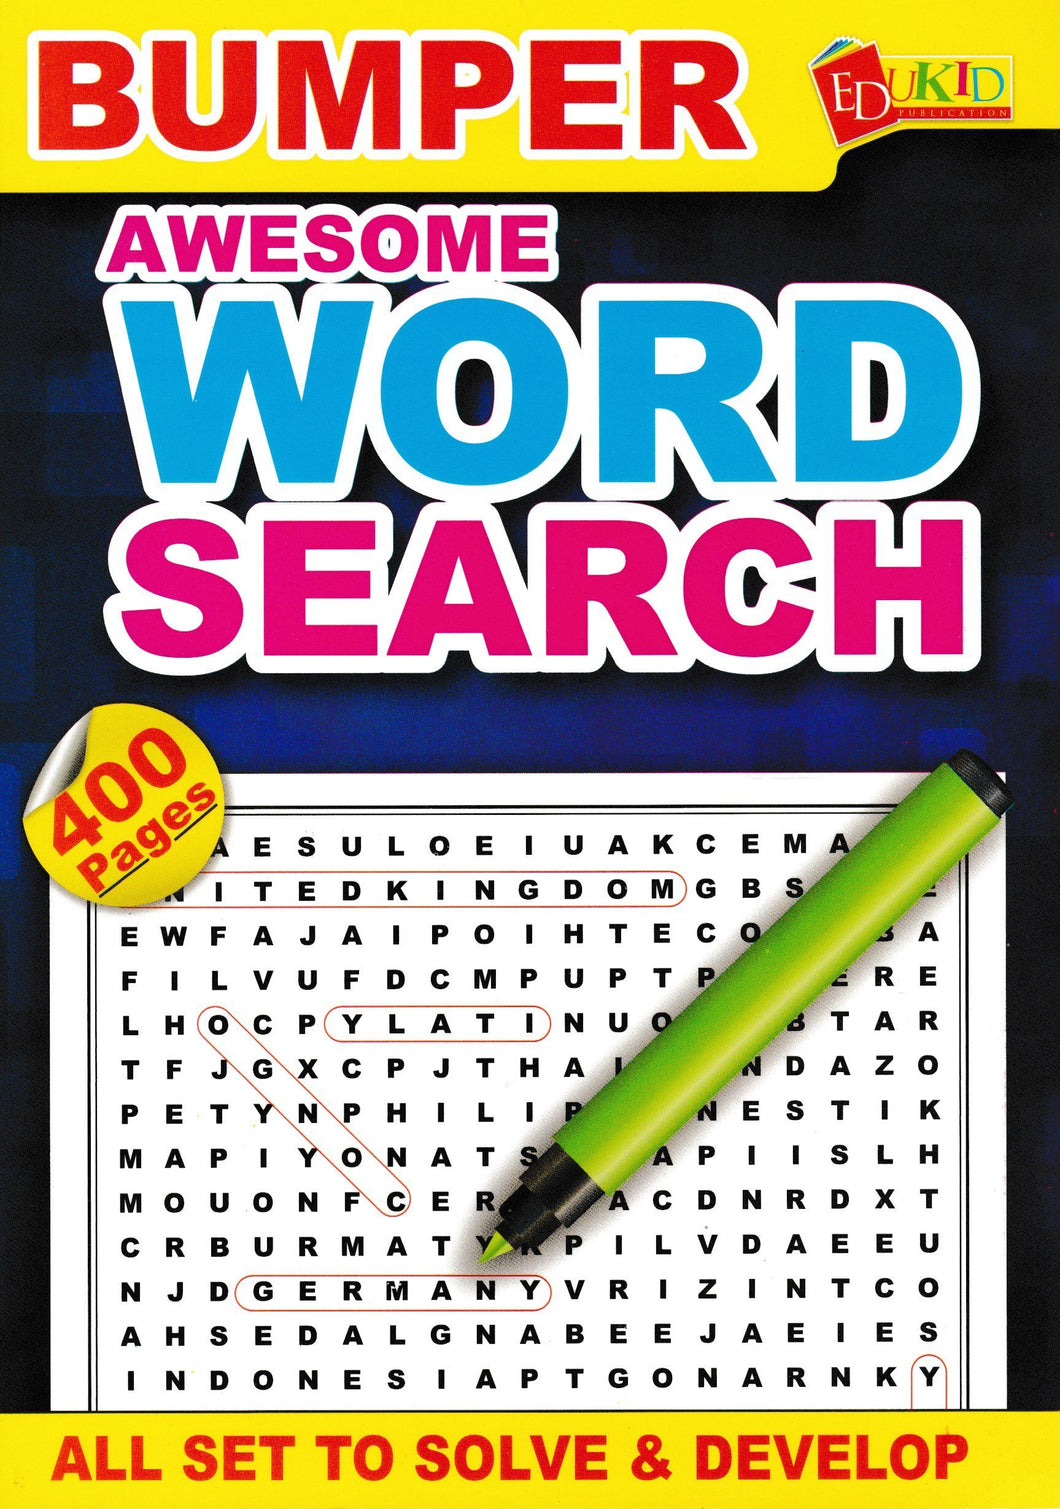 Edukid: Bumper Awesome Word Search